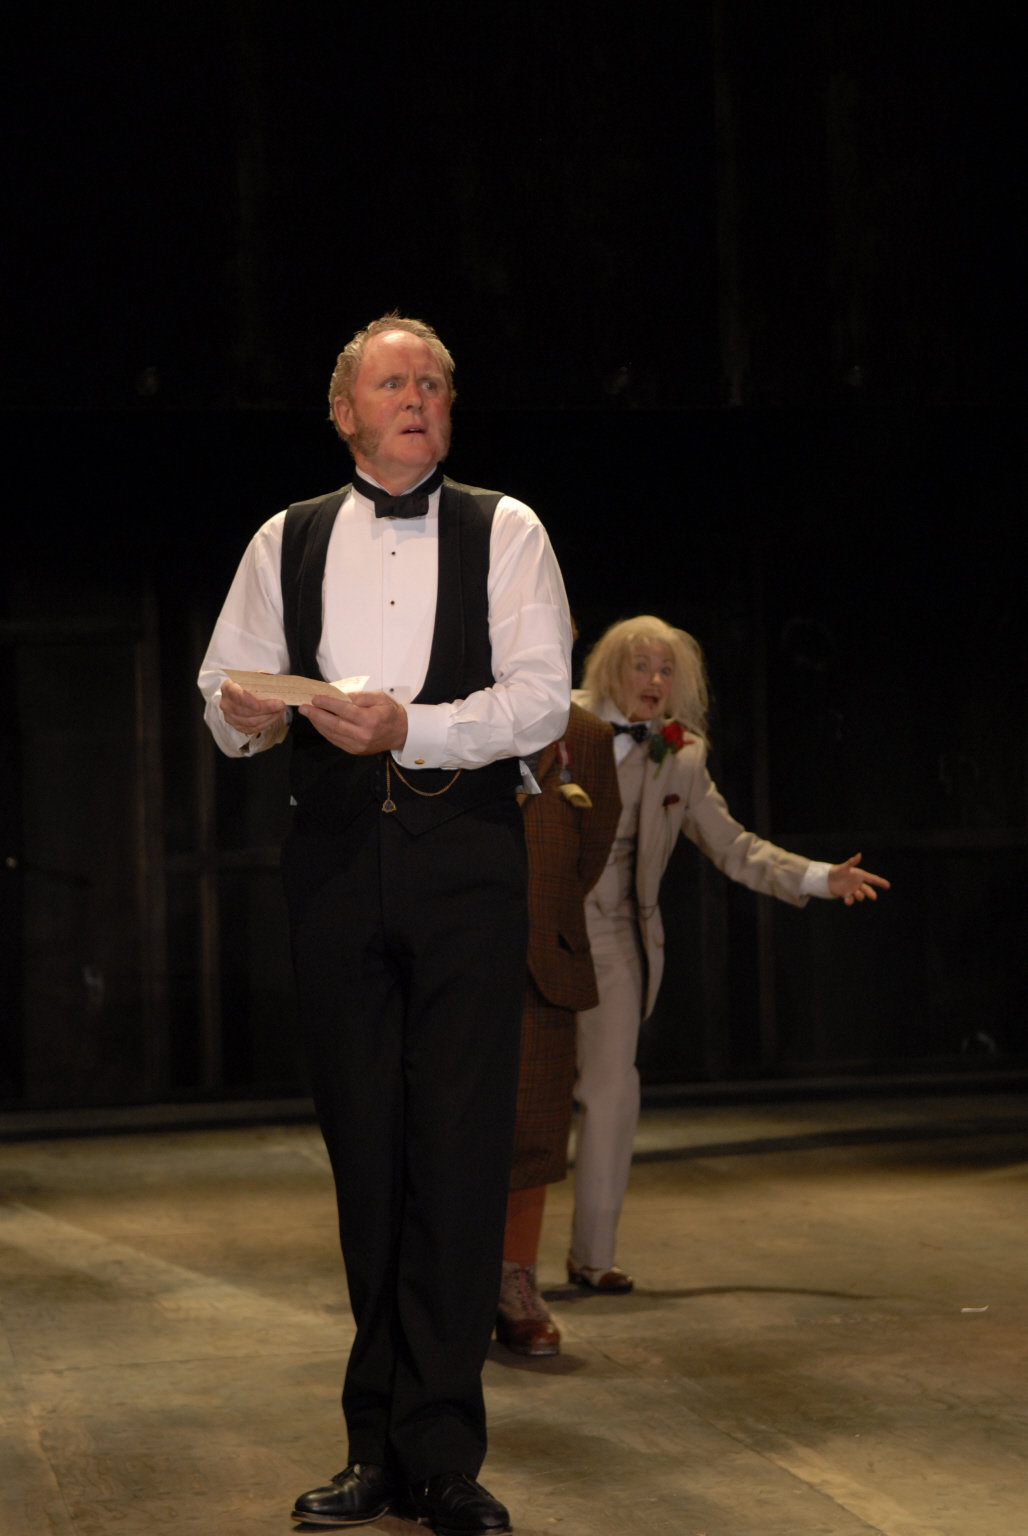 John Lithgow as Malvolio. He is standing reading a letter.